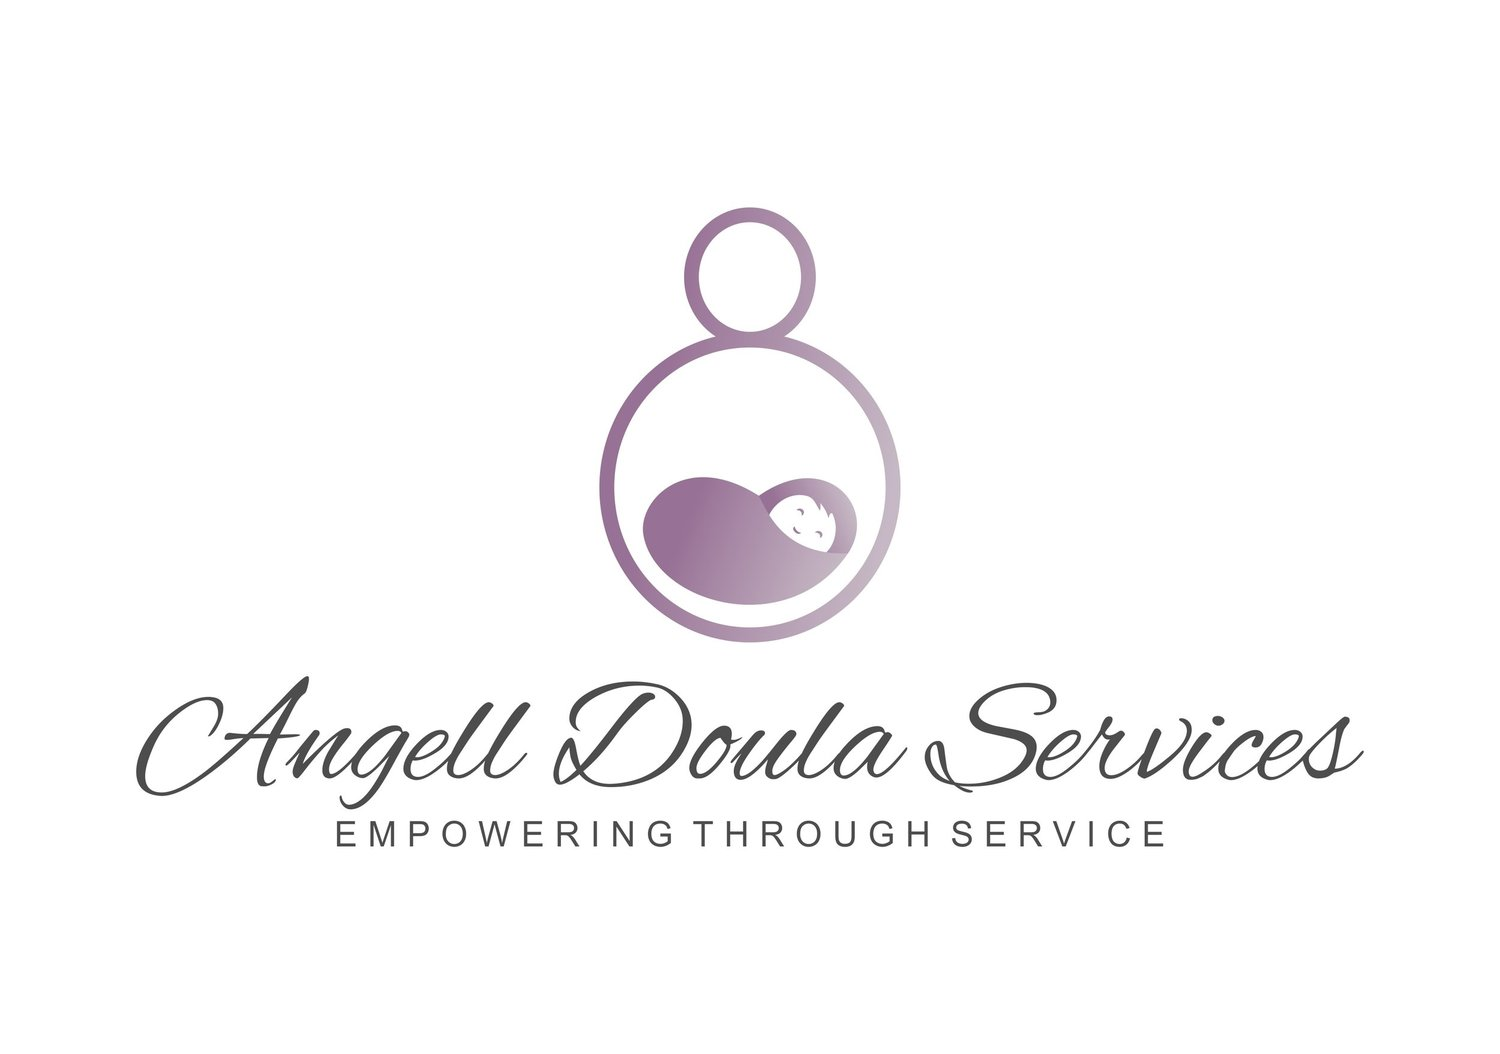 Angell Doula Services